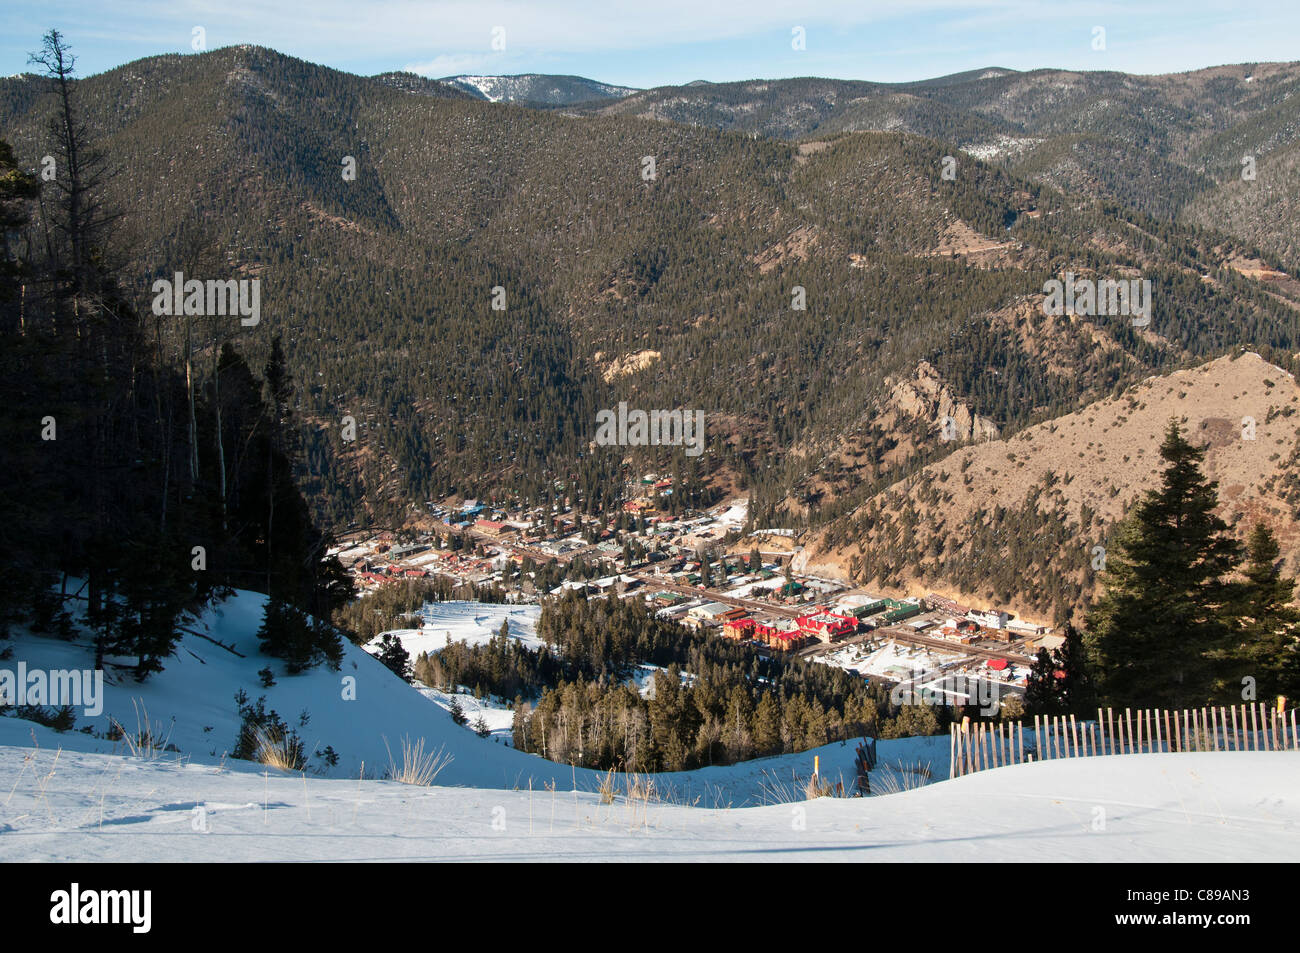 view of town from the slopes of the red river ski area, red river